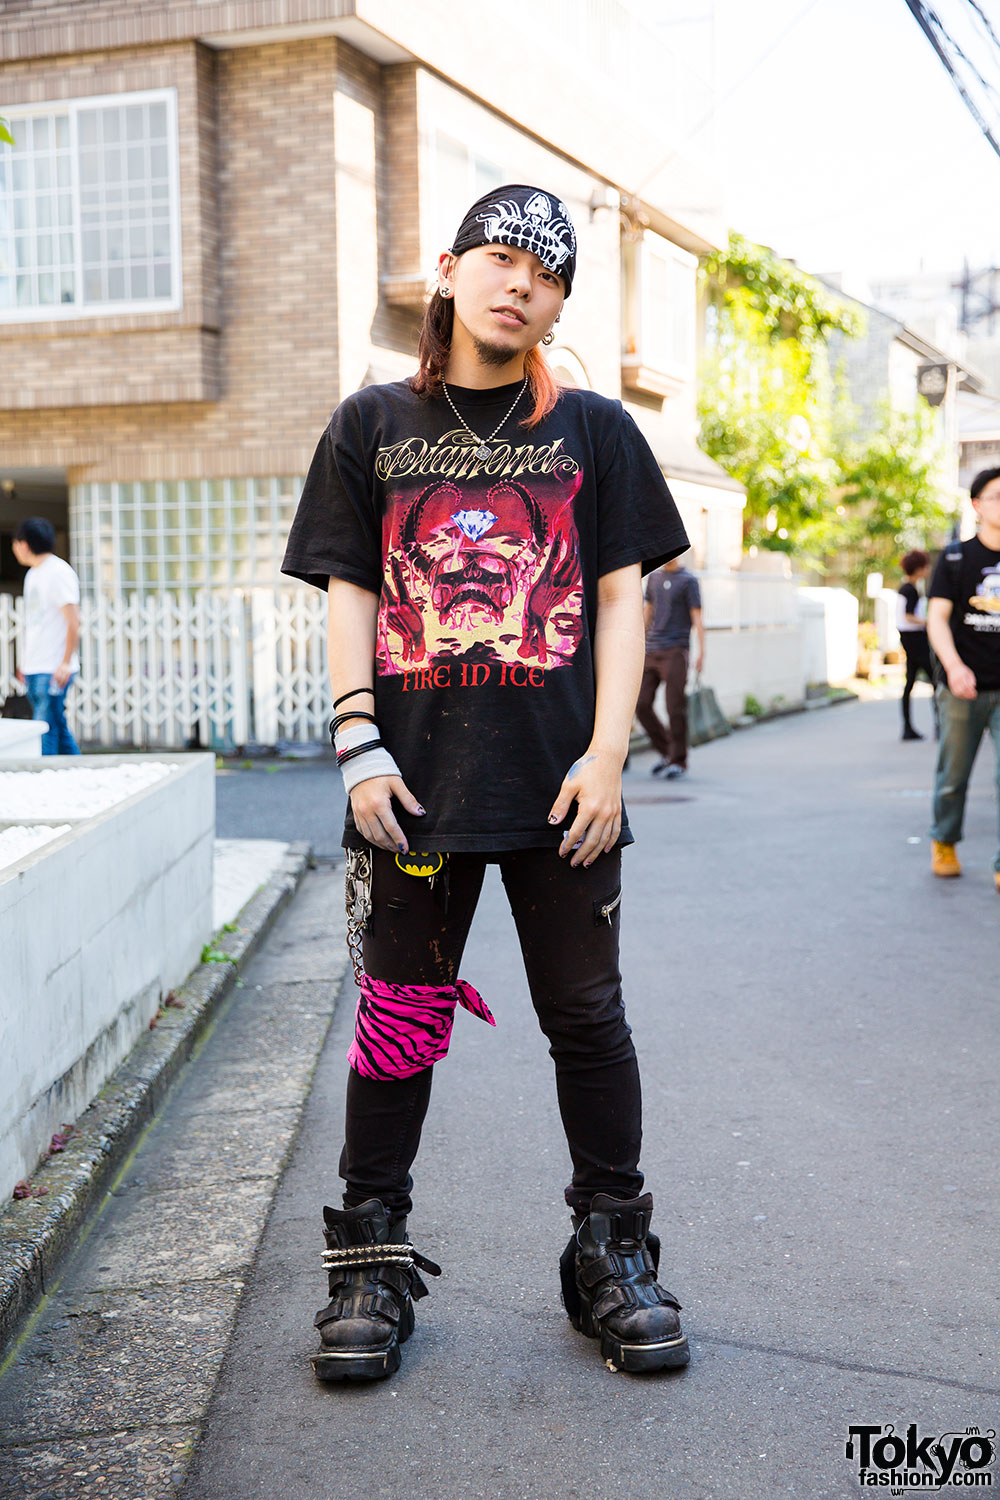 Harajuku Guy 39 S Street Style W Shaved Hair Bandana Band Tee New Rock Boots